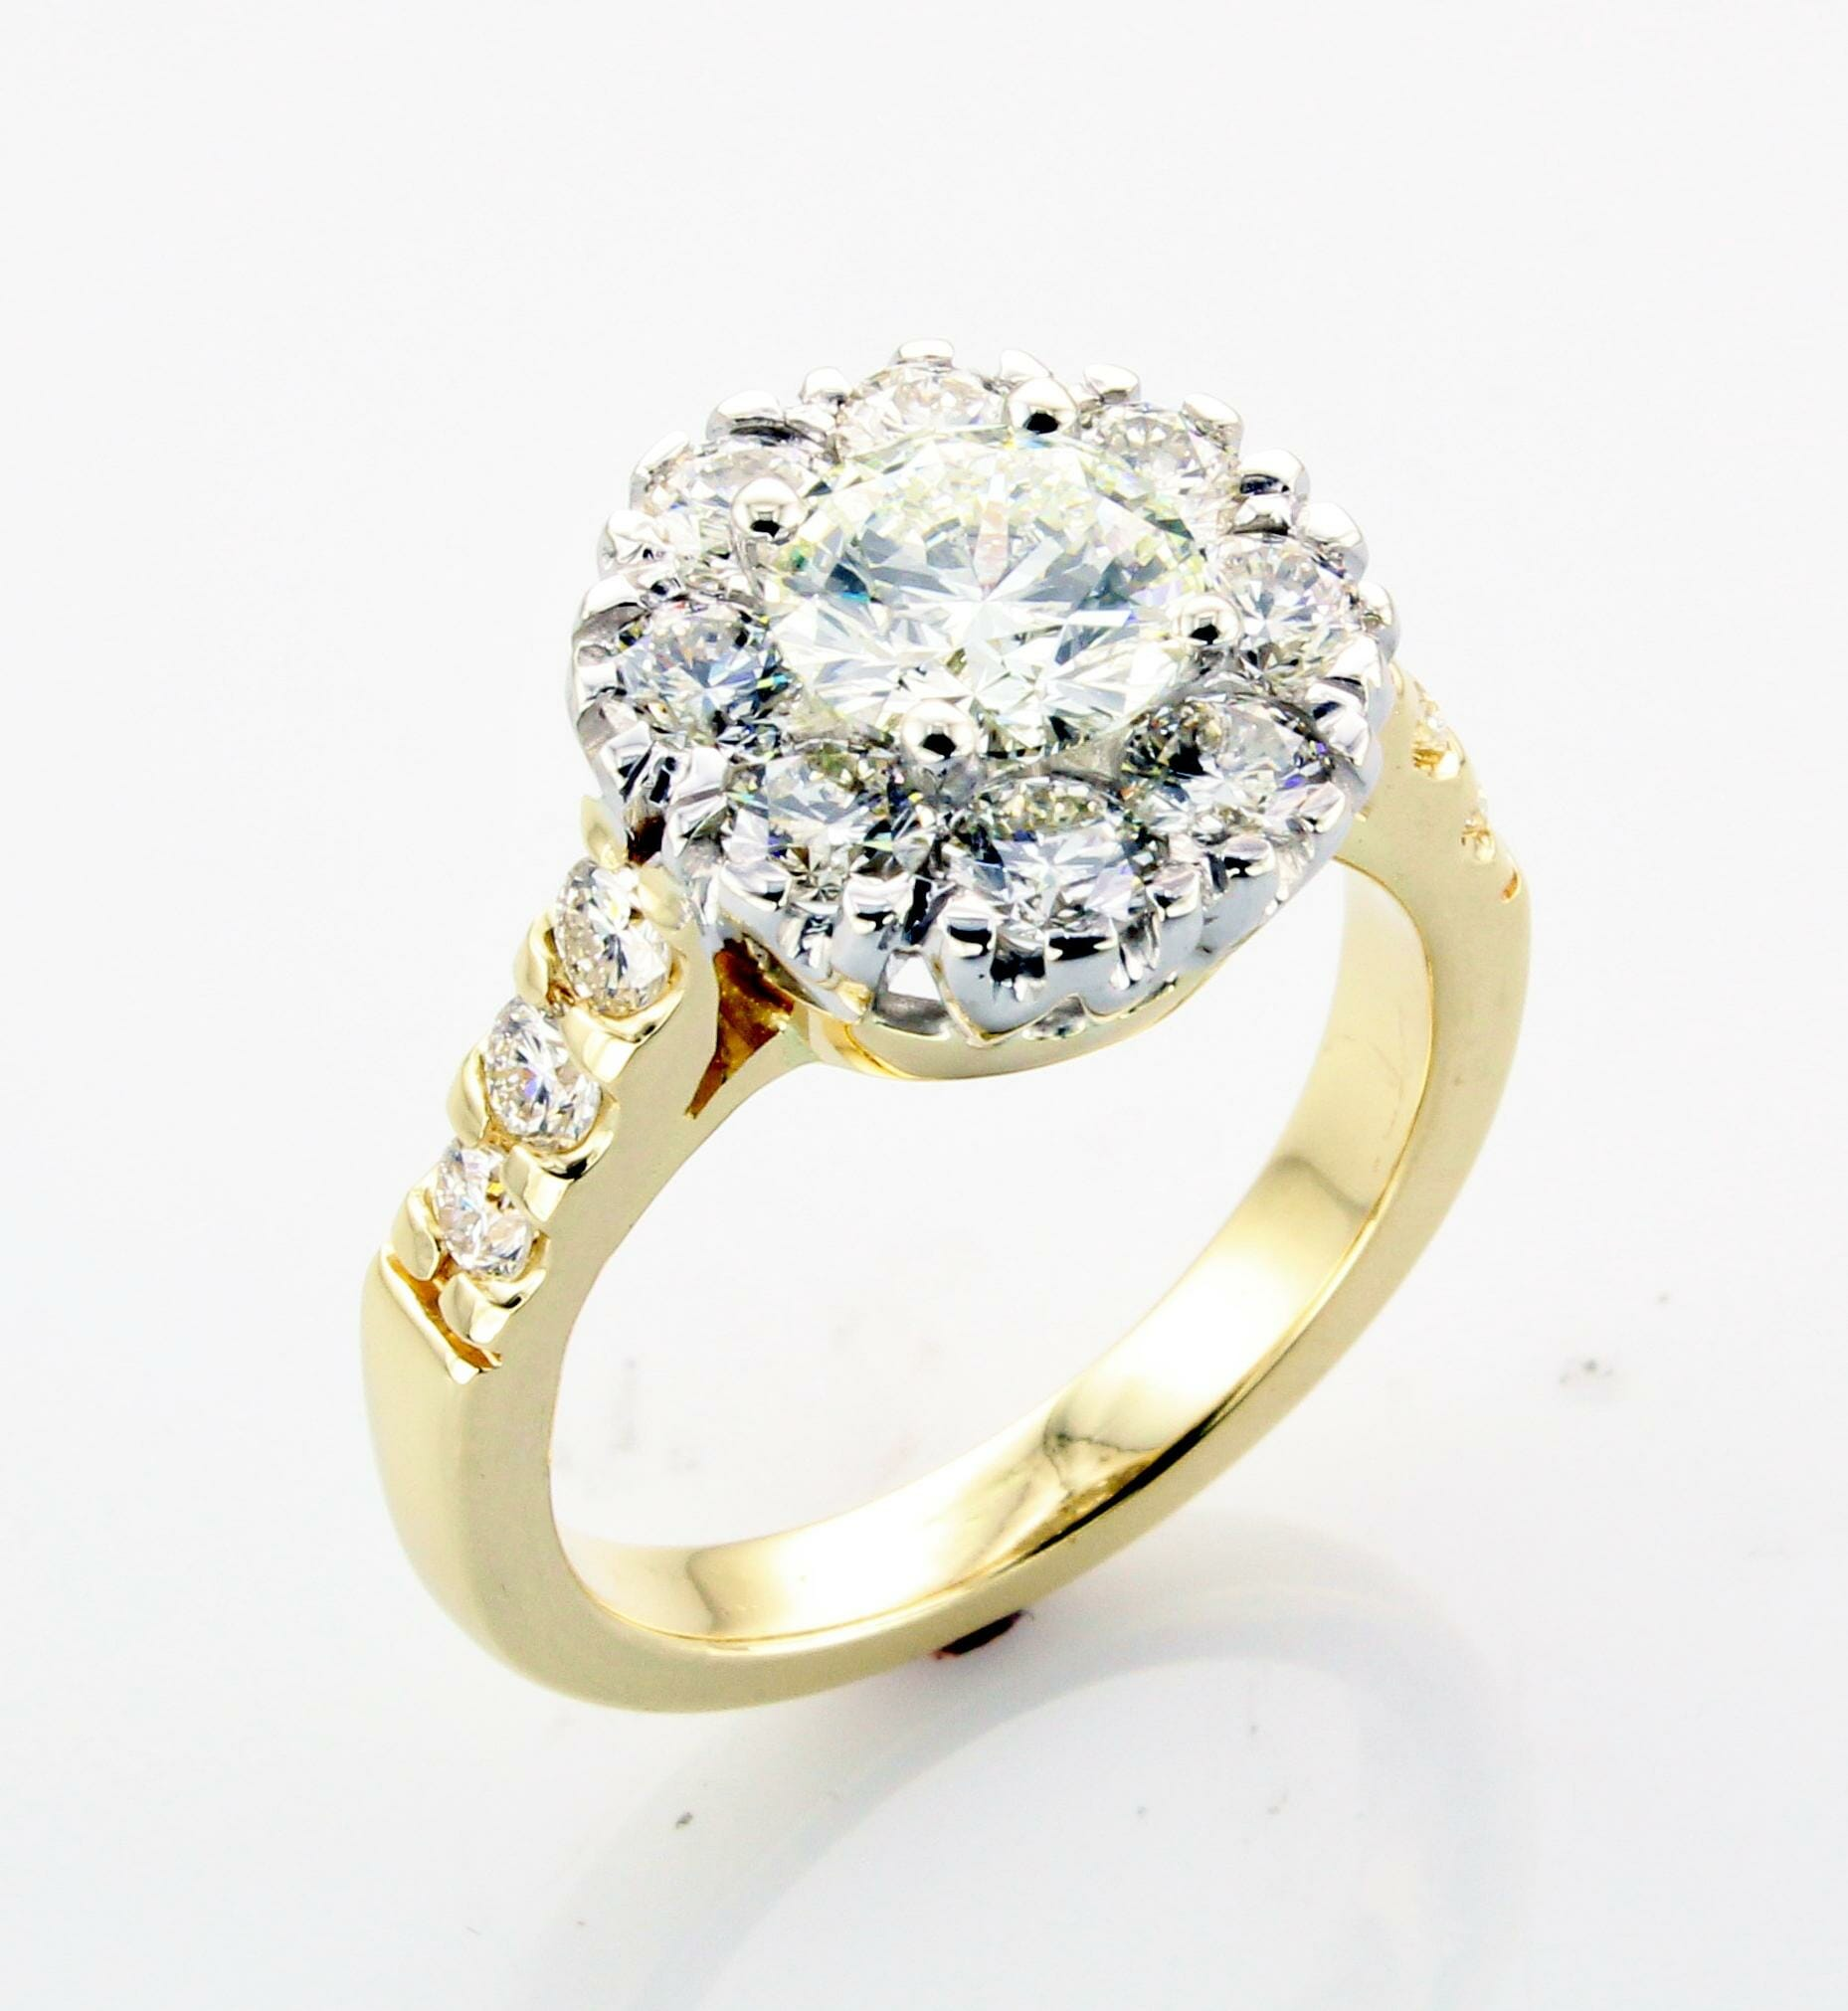 Yellow gold halo diamond engagement ring with side diamonds down shank